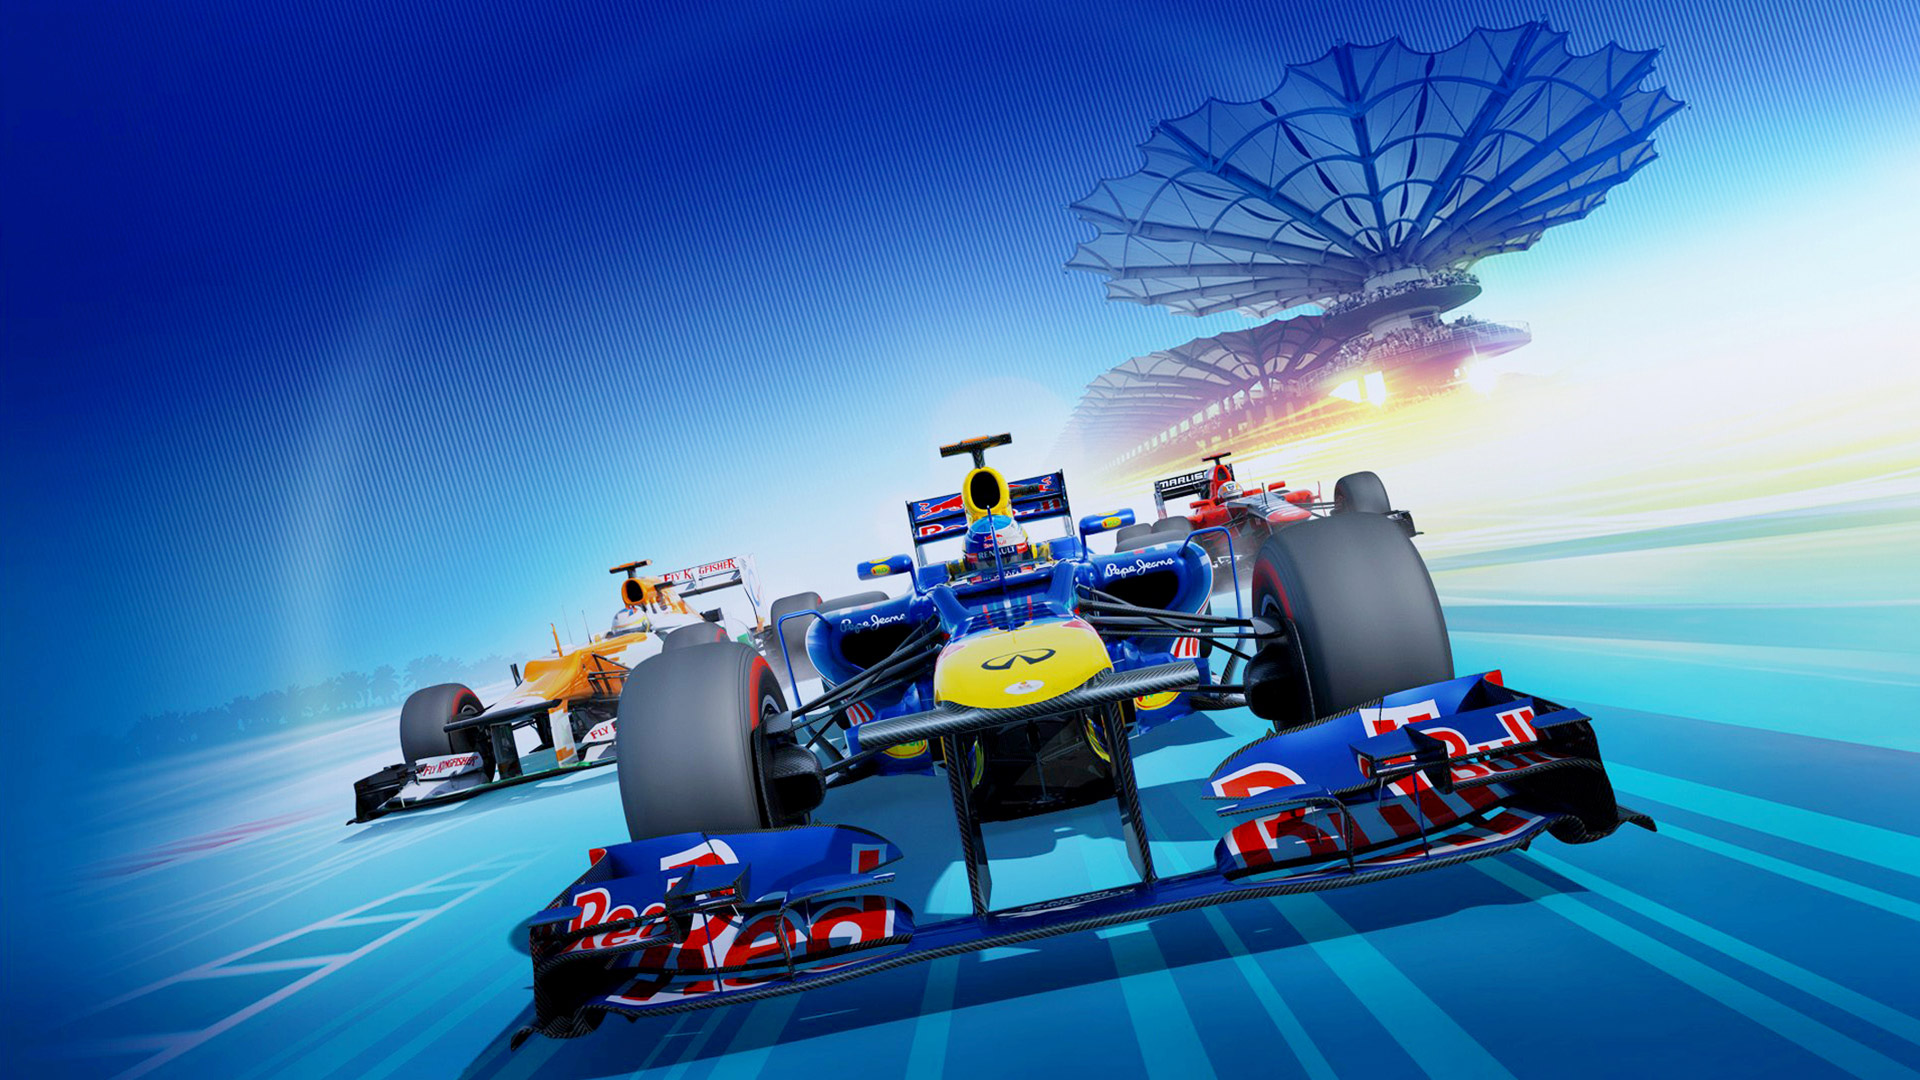 Free F1 2012 Wallpaper in 1920x1080